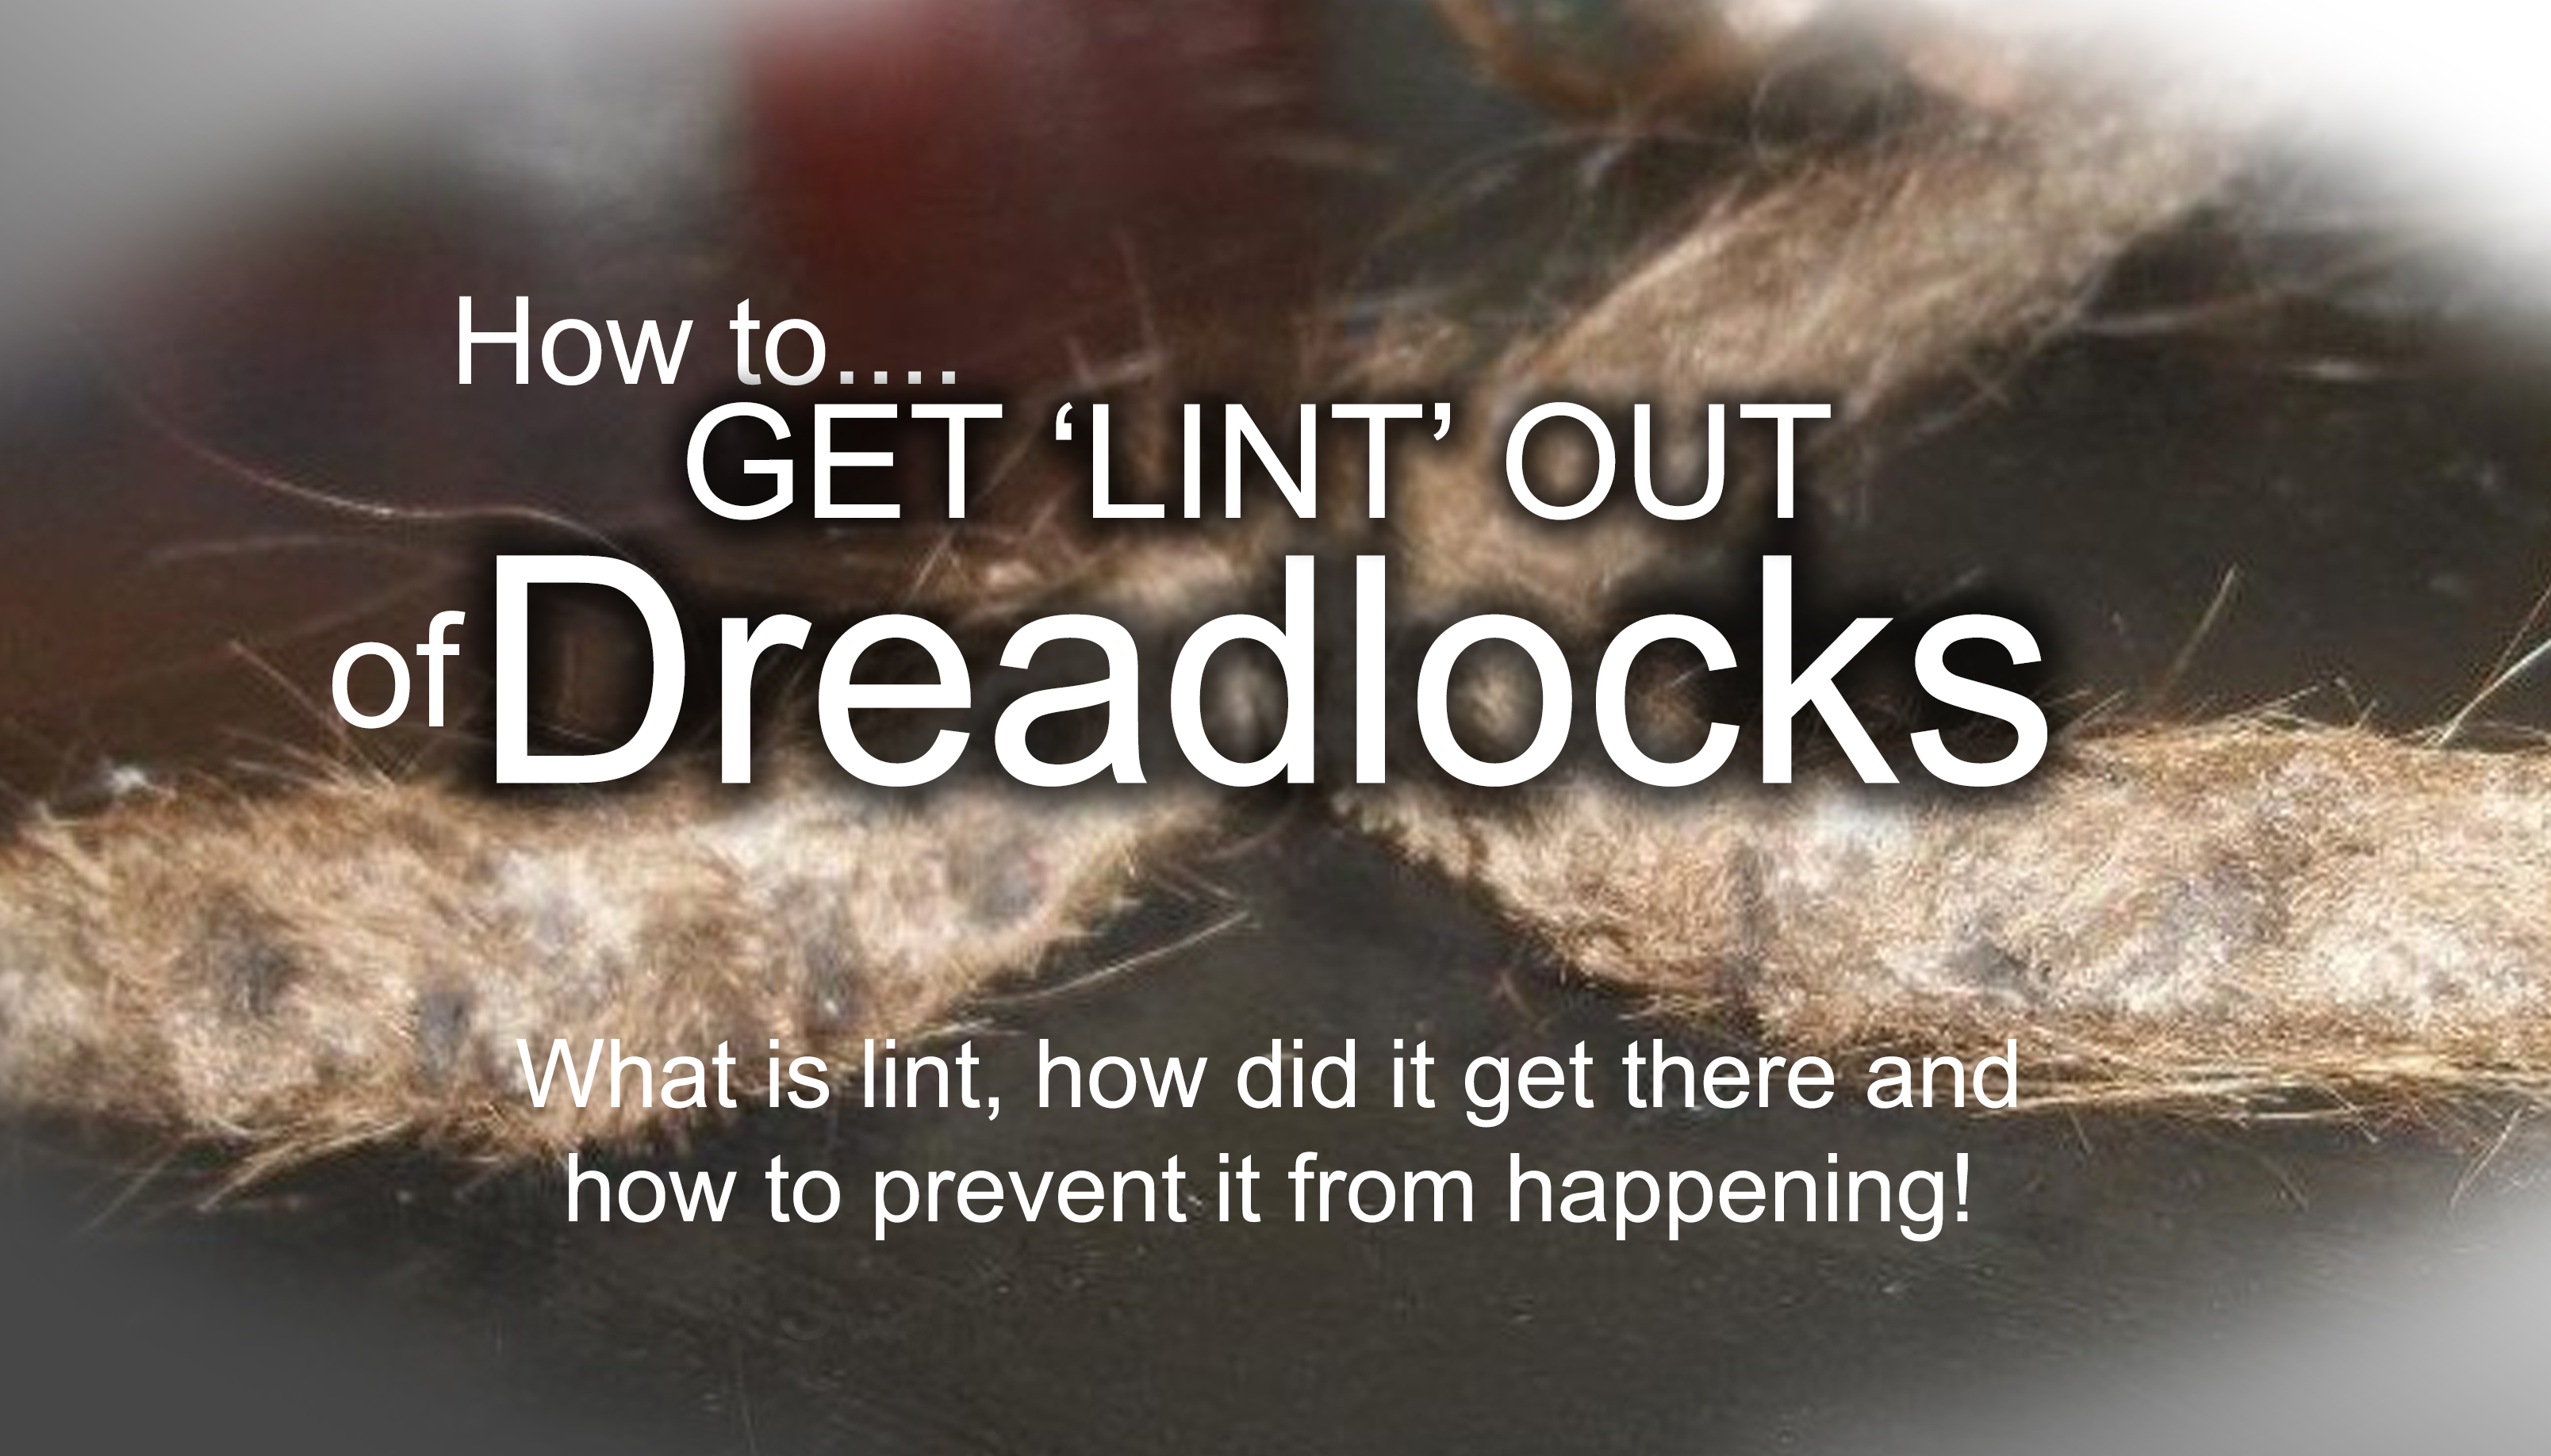 Get link out of dreadlocks